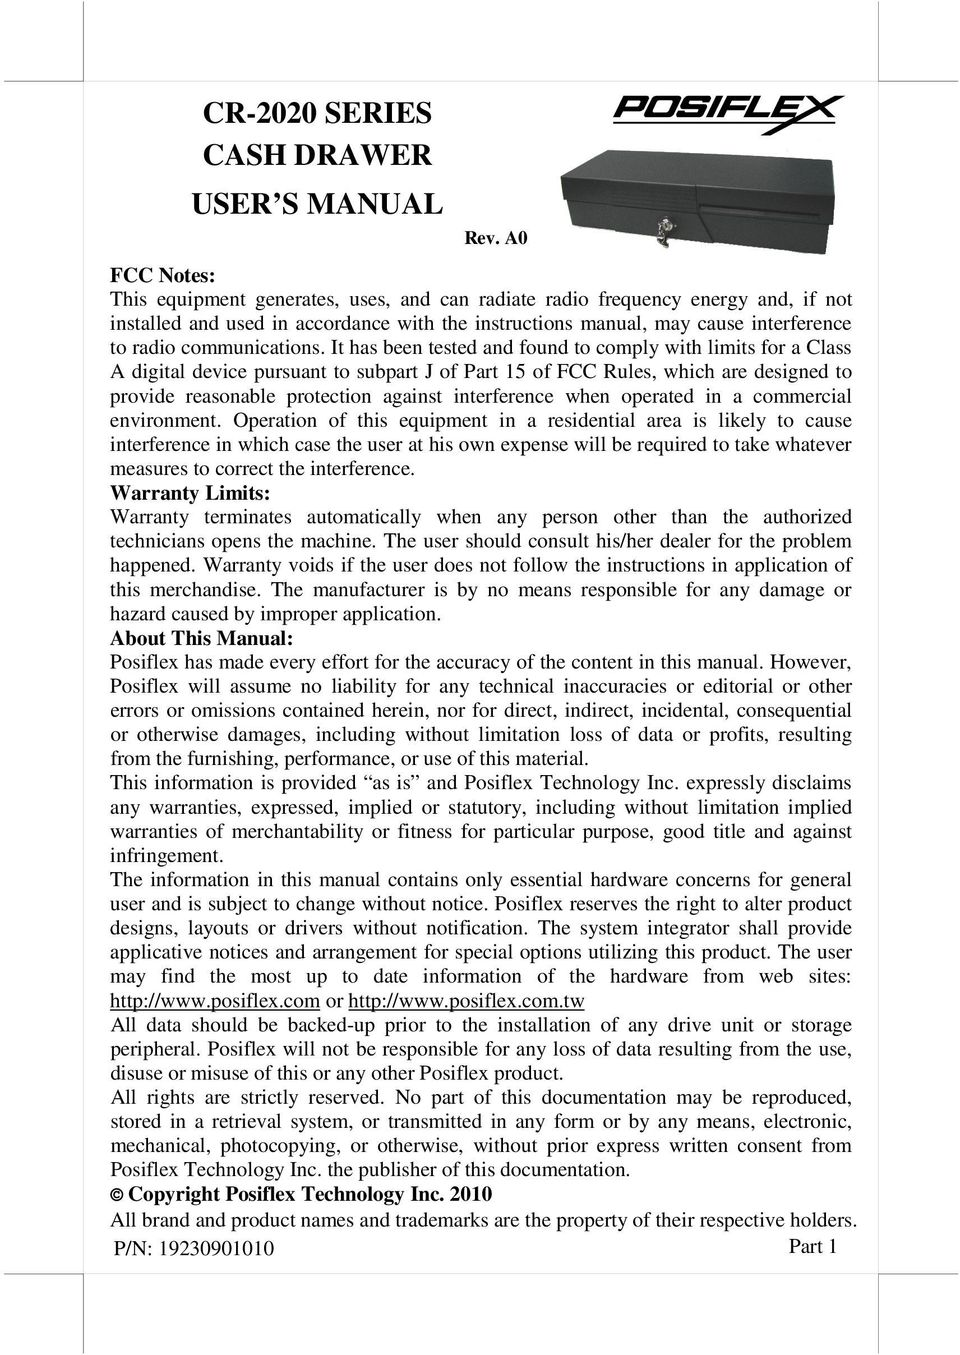 CR-2020 SERIES CASH DRAWER USER S MANUAL Rev  A0 - PDF